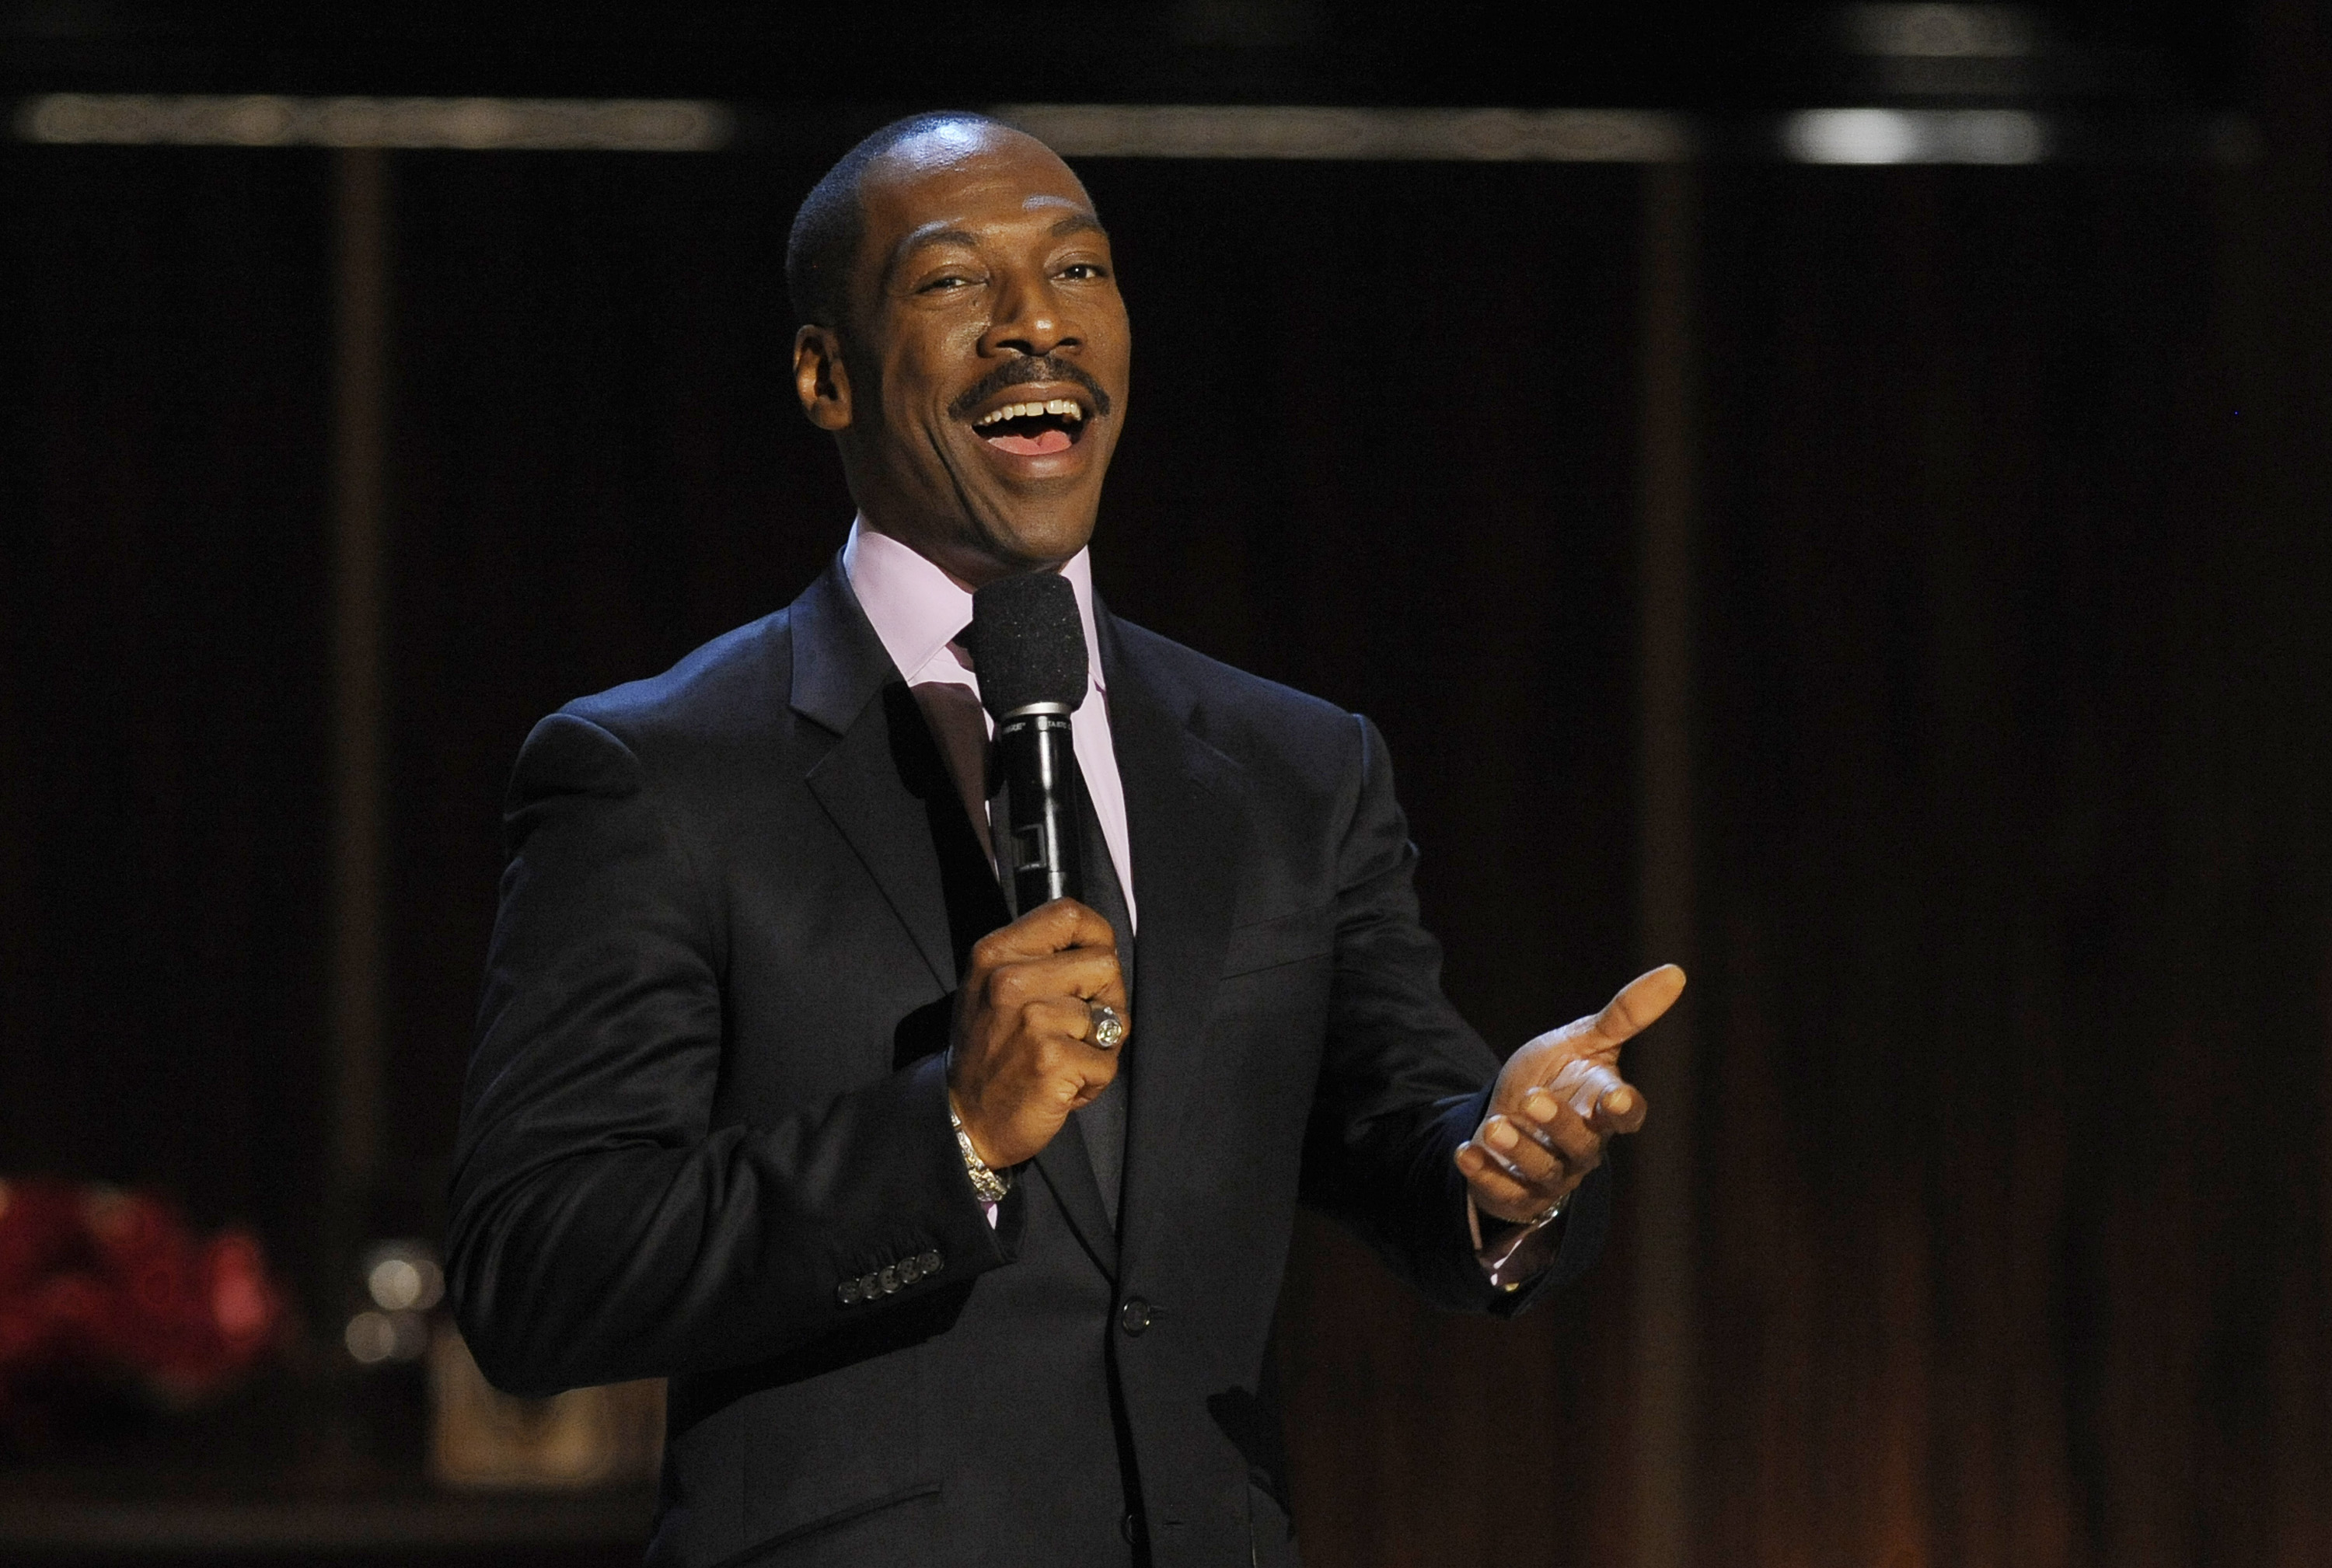 Lineup announced for Eddie Murphy at Kennedy Center